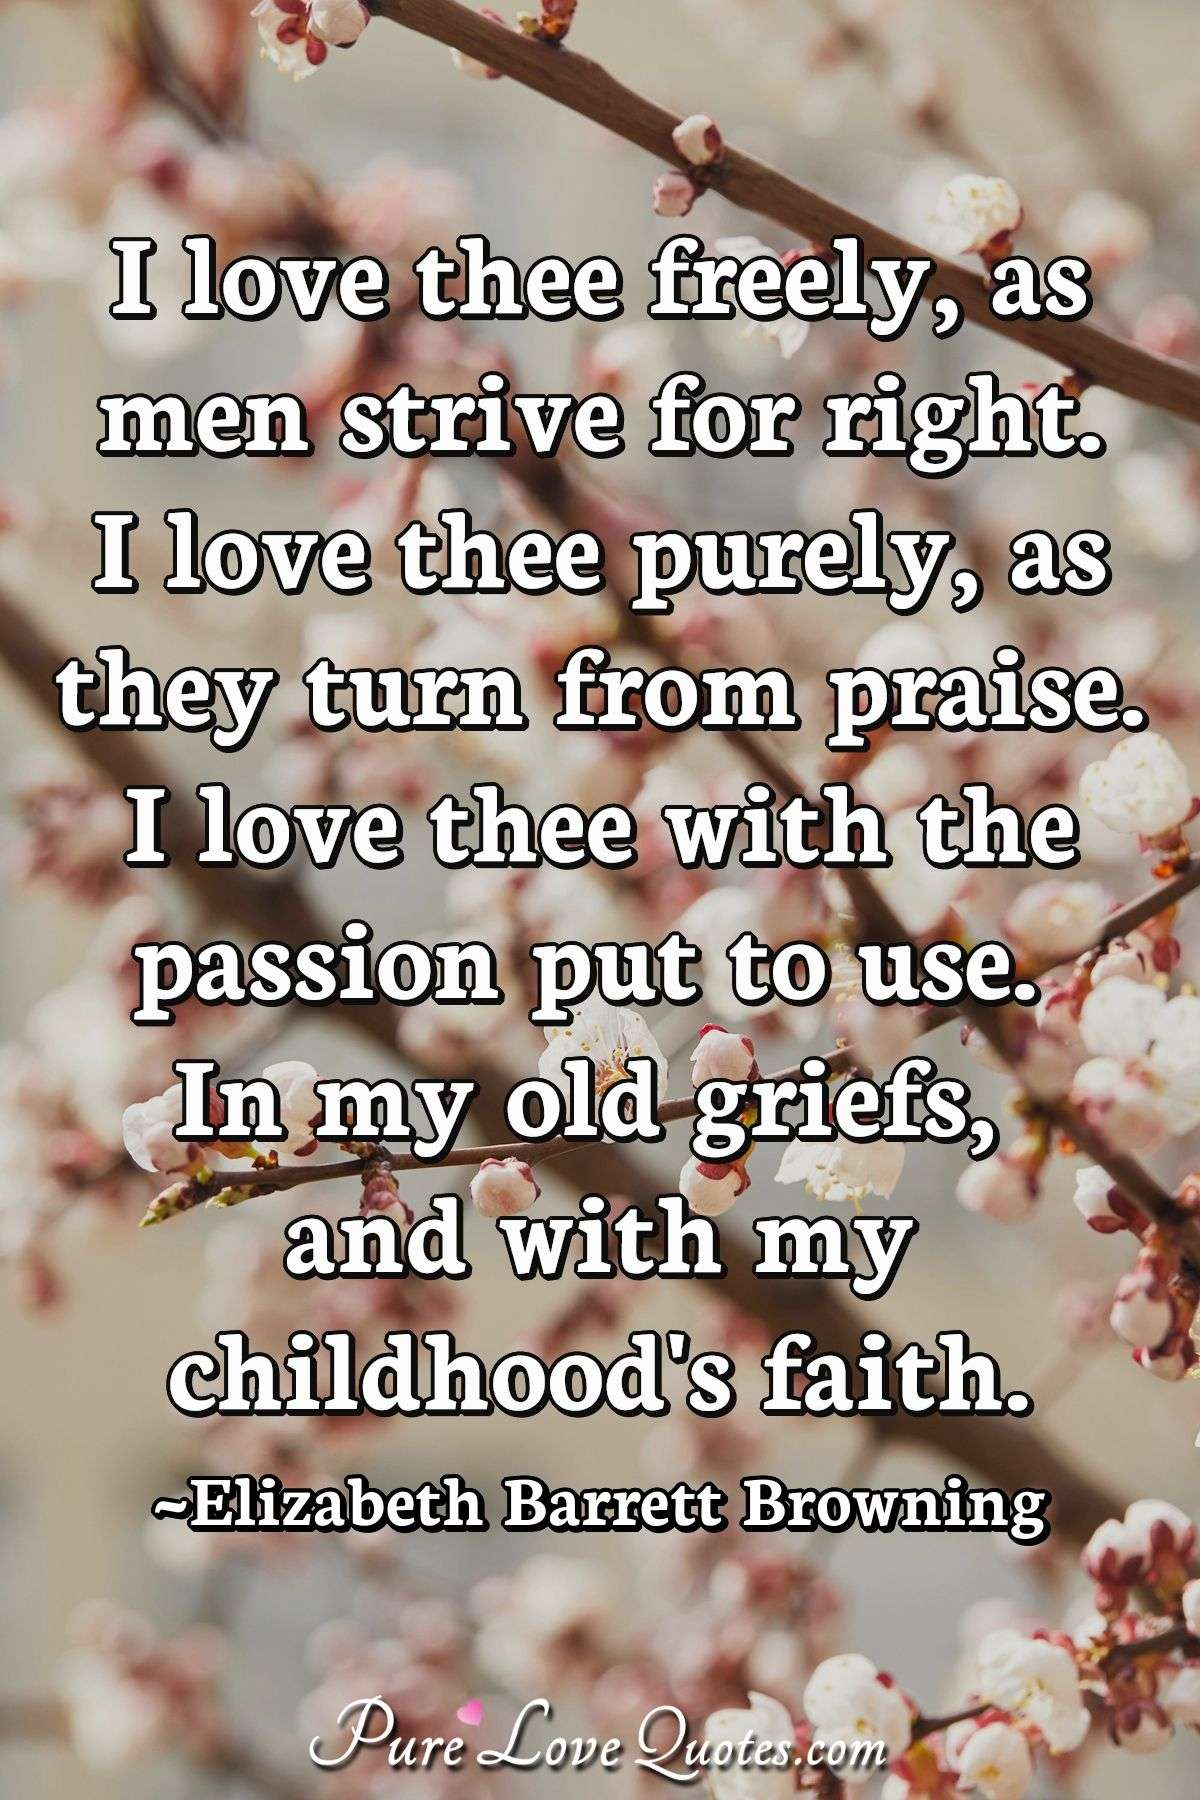 I love thee freely, as men strive for right.